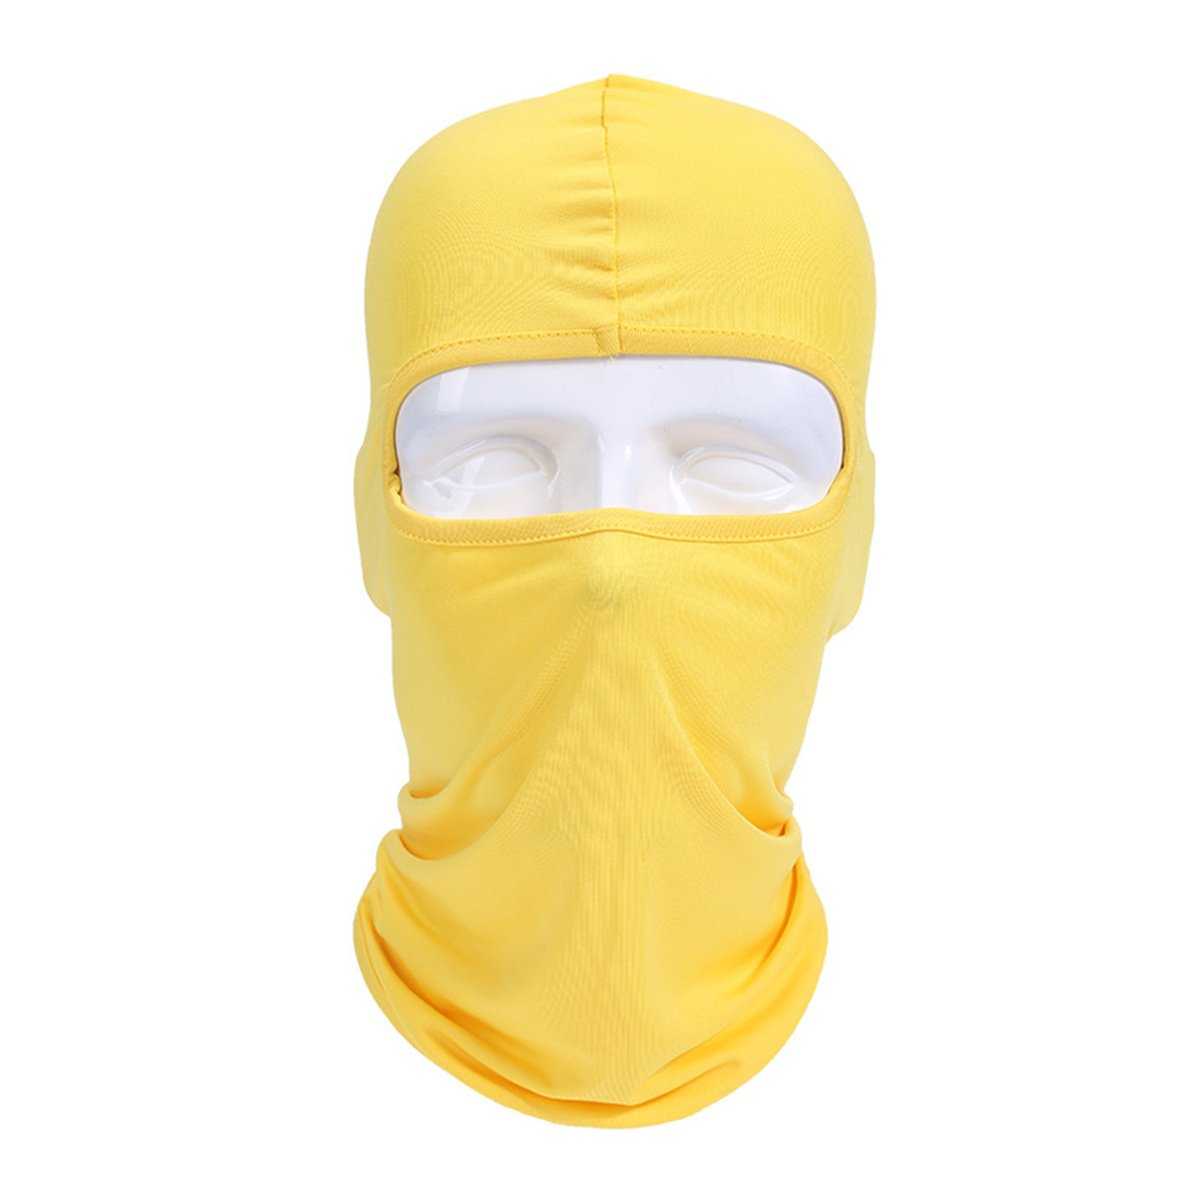 Full Face Motorcycle Balaclavas Mask Tactical Hood Headwear ECYC 11976